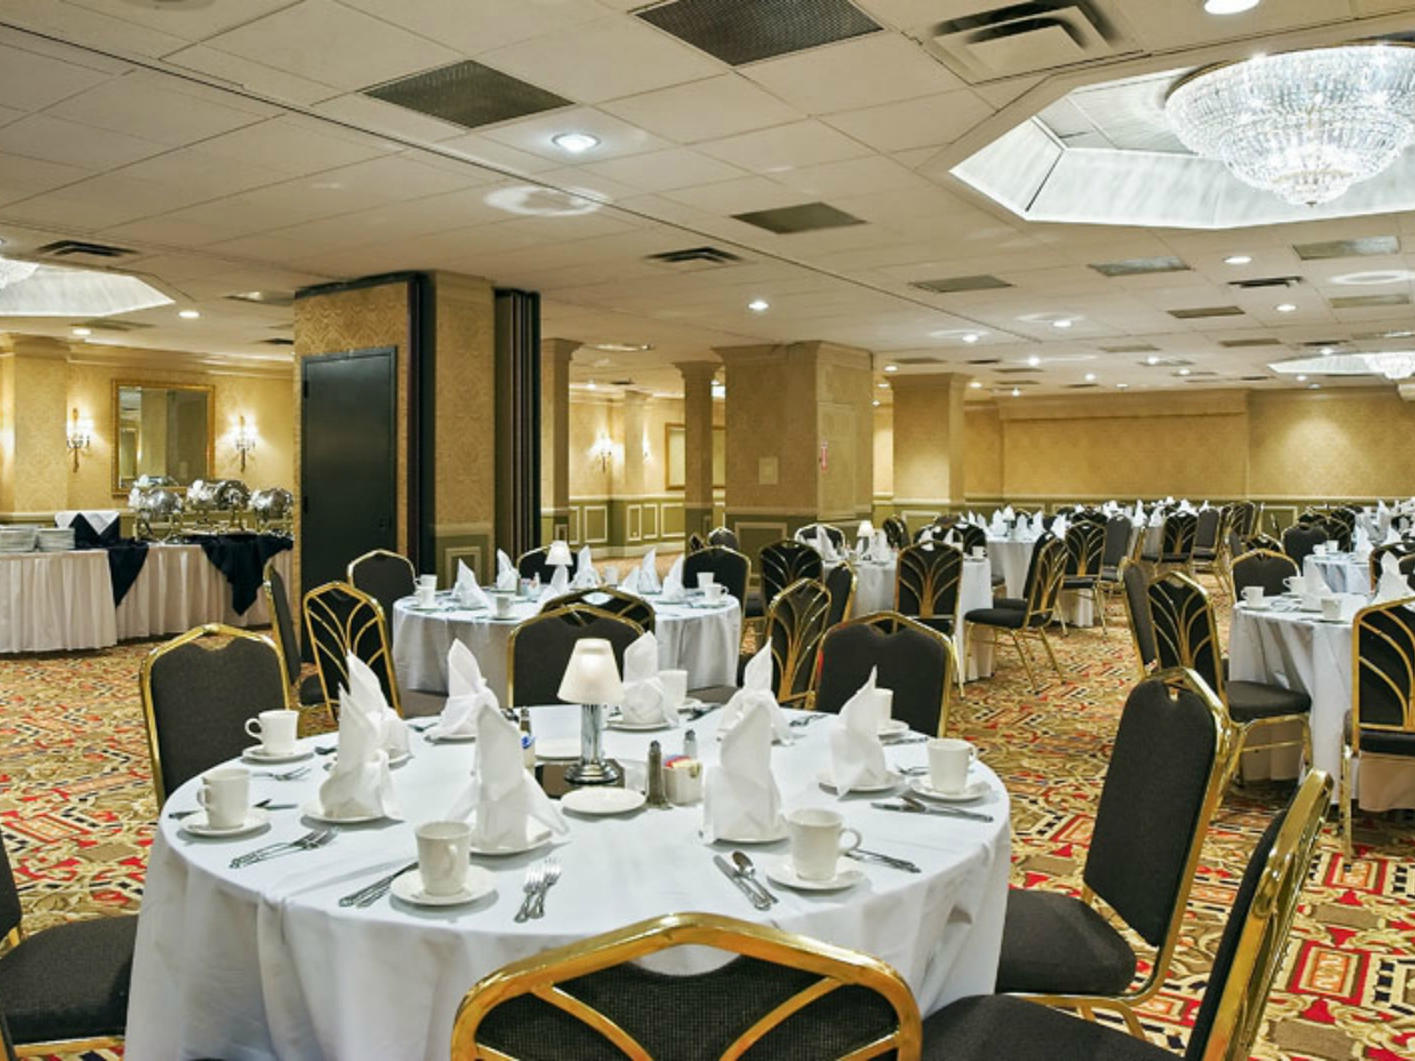 chairs and tables in a large ballroom